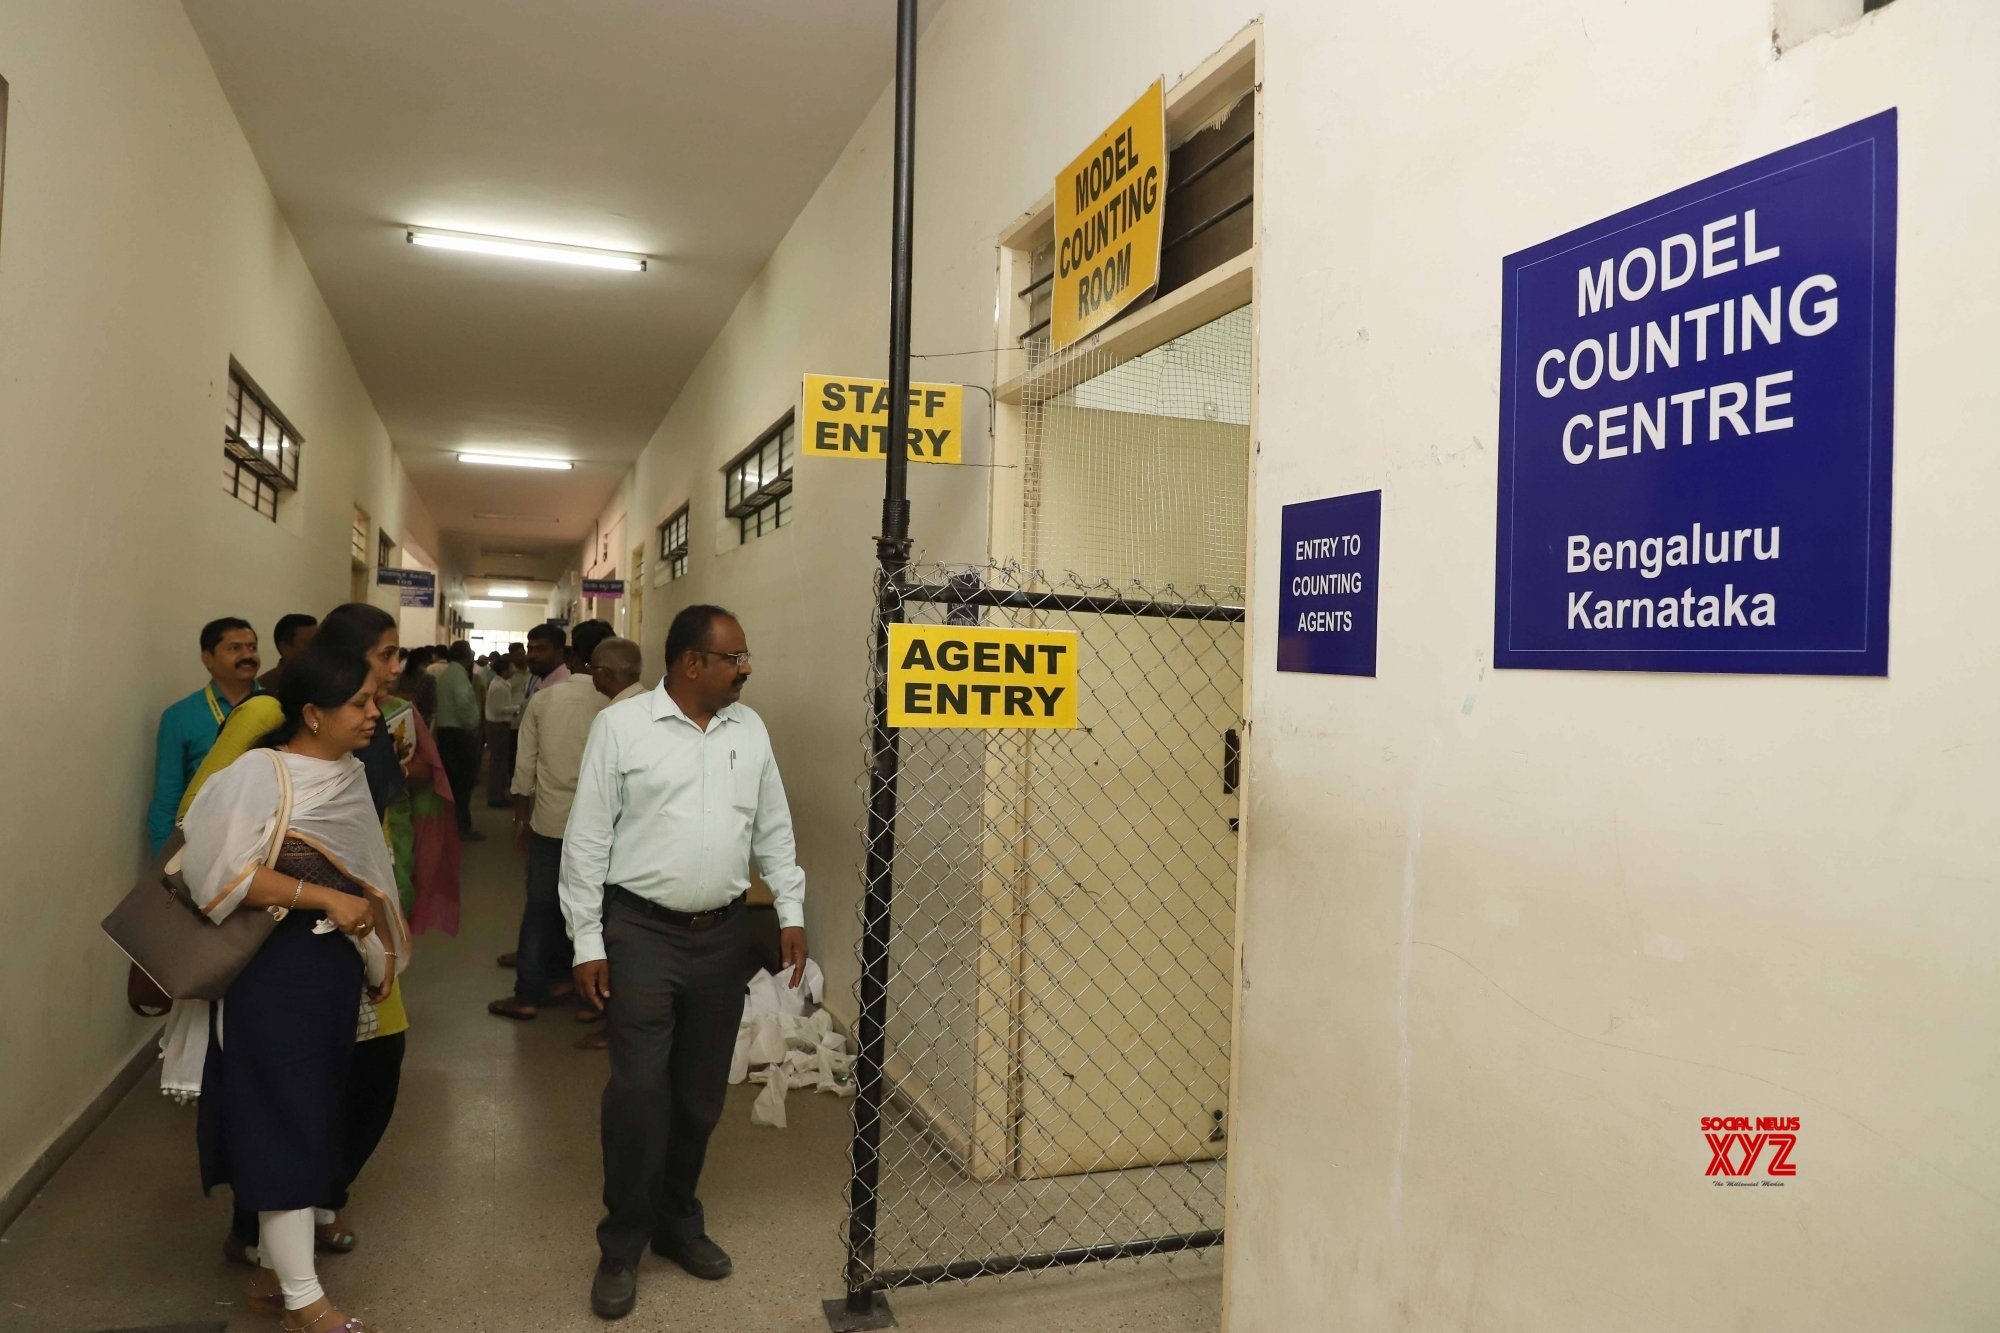 Bengaluru: Model counting centre #Gallery